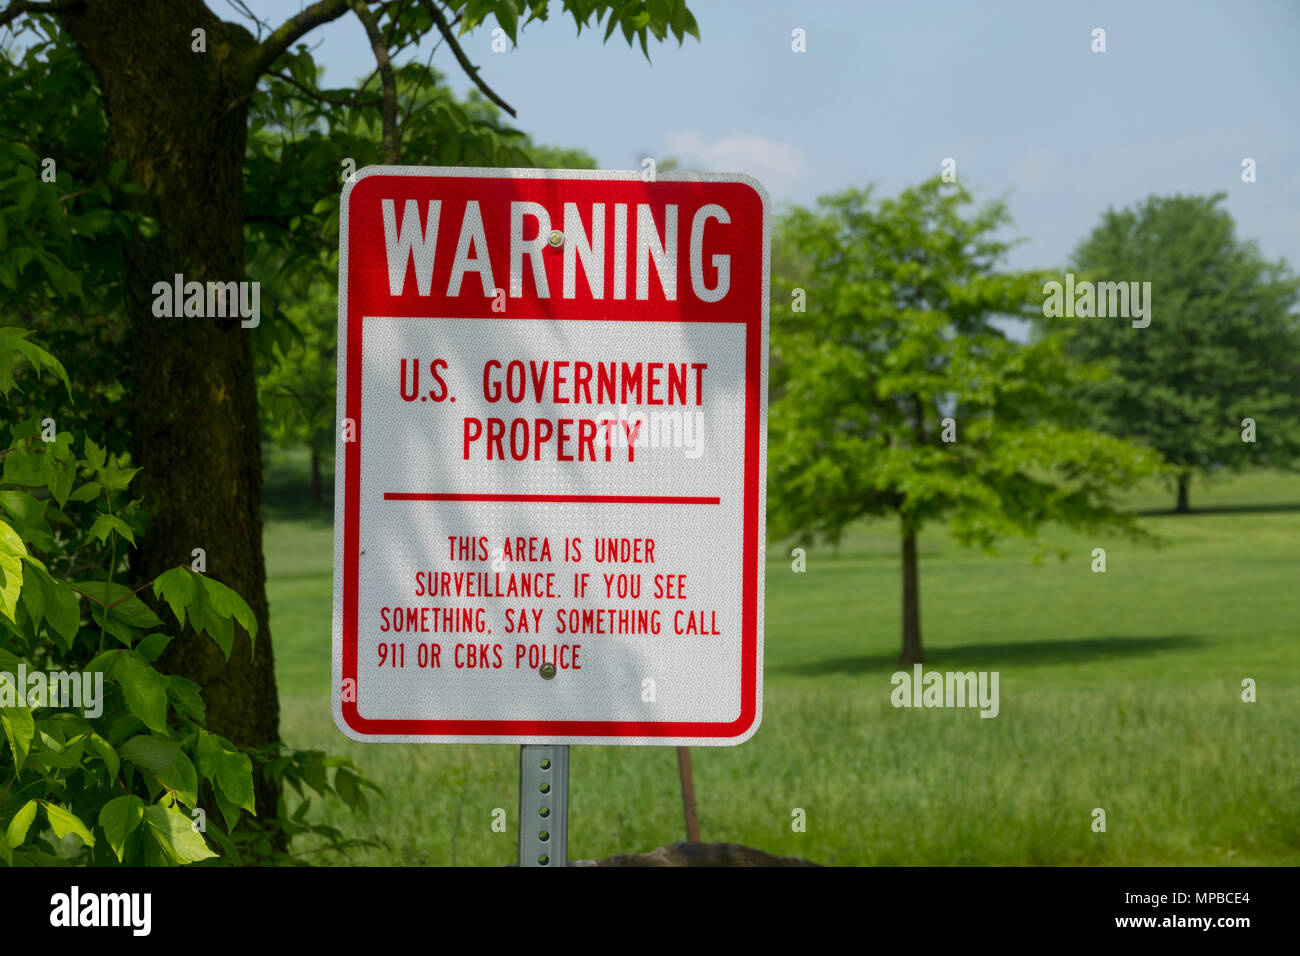 Warning Sign by the United States of America Federal government that area is under surveillance  of land property - Stock Image